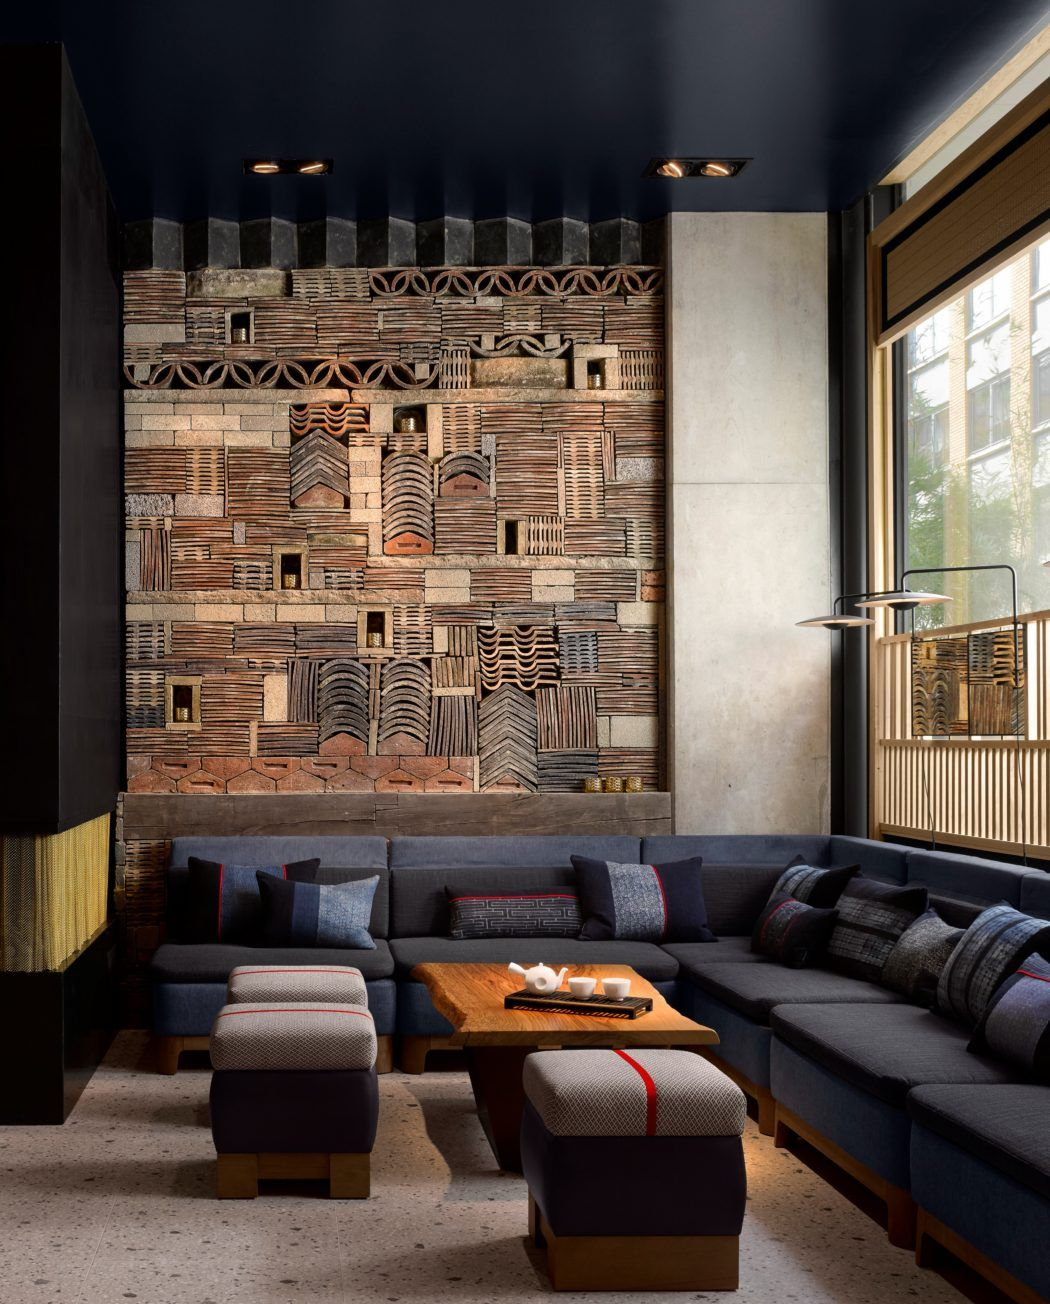 Adams Interieur Styling Nobu Hotel Shoreditch By Ben Adams Architects | D R E A M